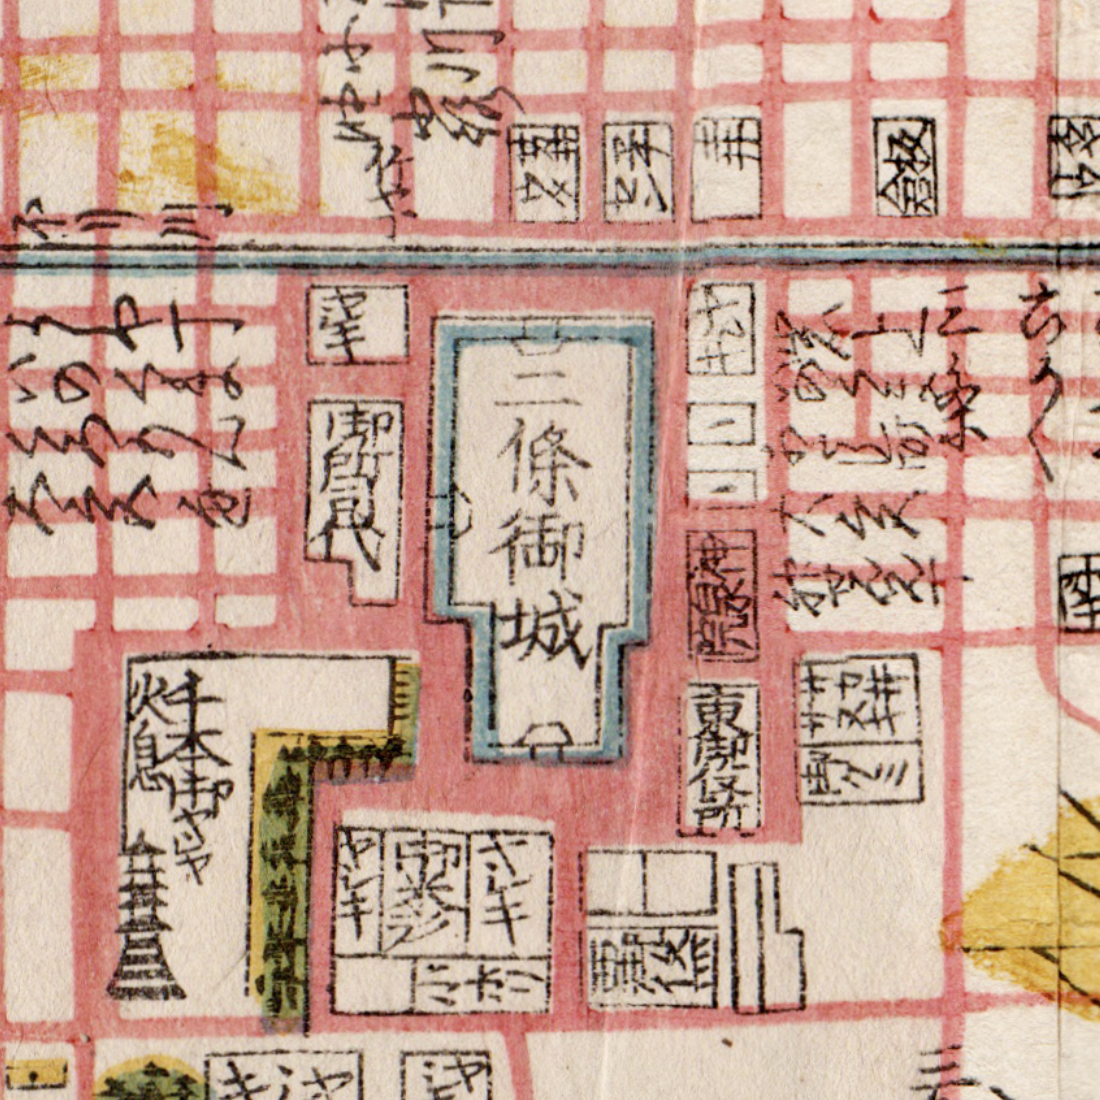 Nijo Castle was administered as imperial property in the Edo period, so it had ancillary buildings on the side, which explains why there is space there for large supermarkets like Izumiya (top left corner of the moat).